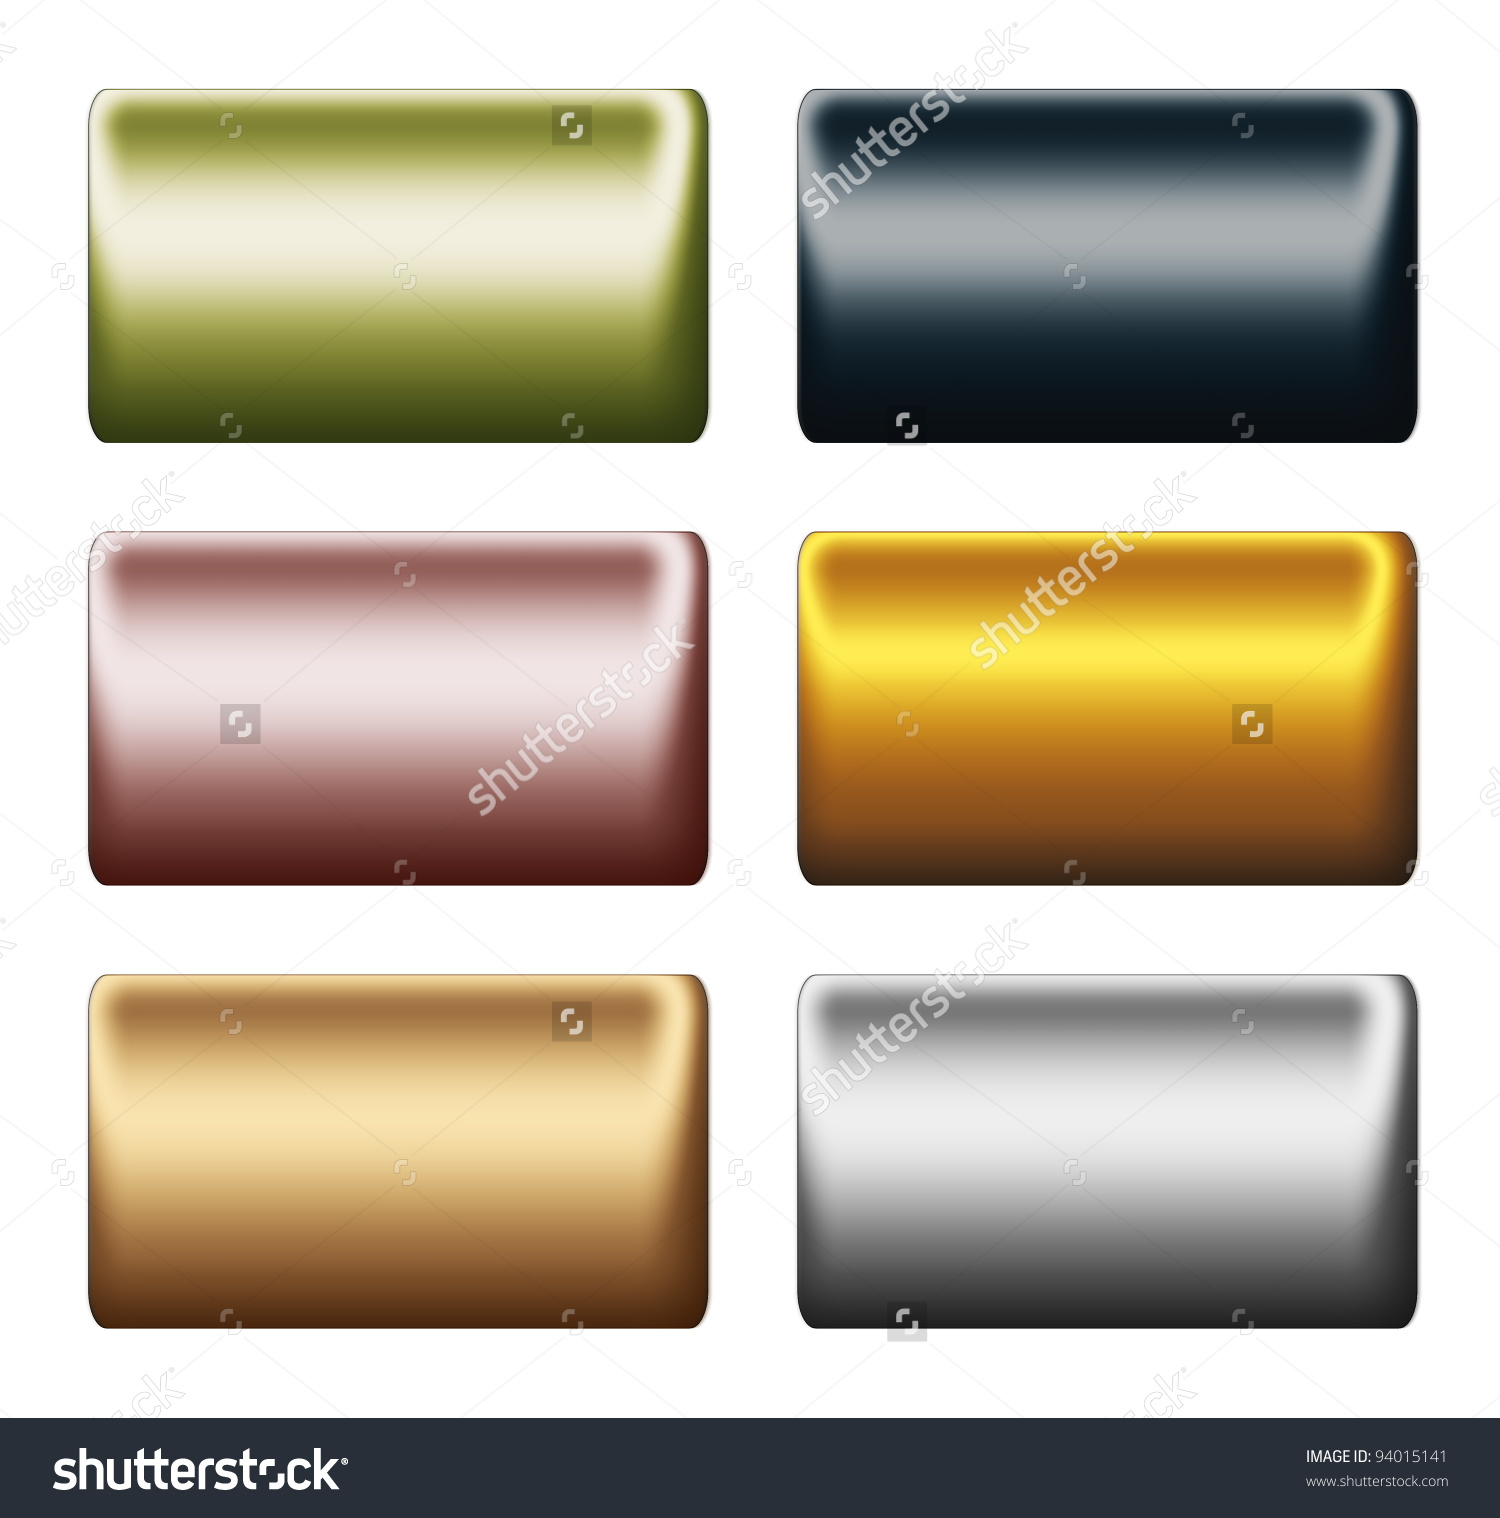 Smooth Metal Push Buttons Bars Clipart Stock Illustration 94015141.